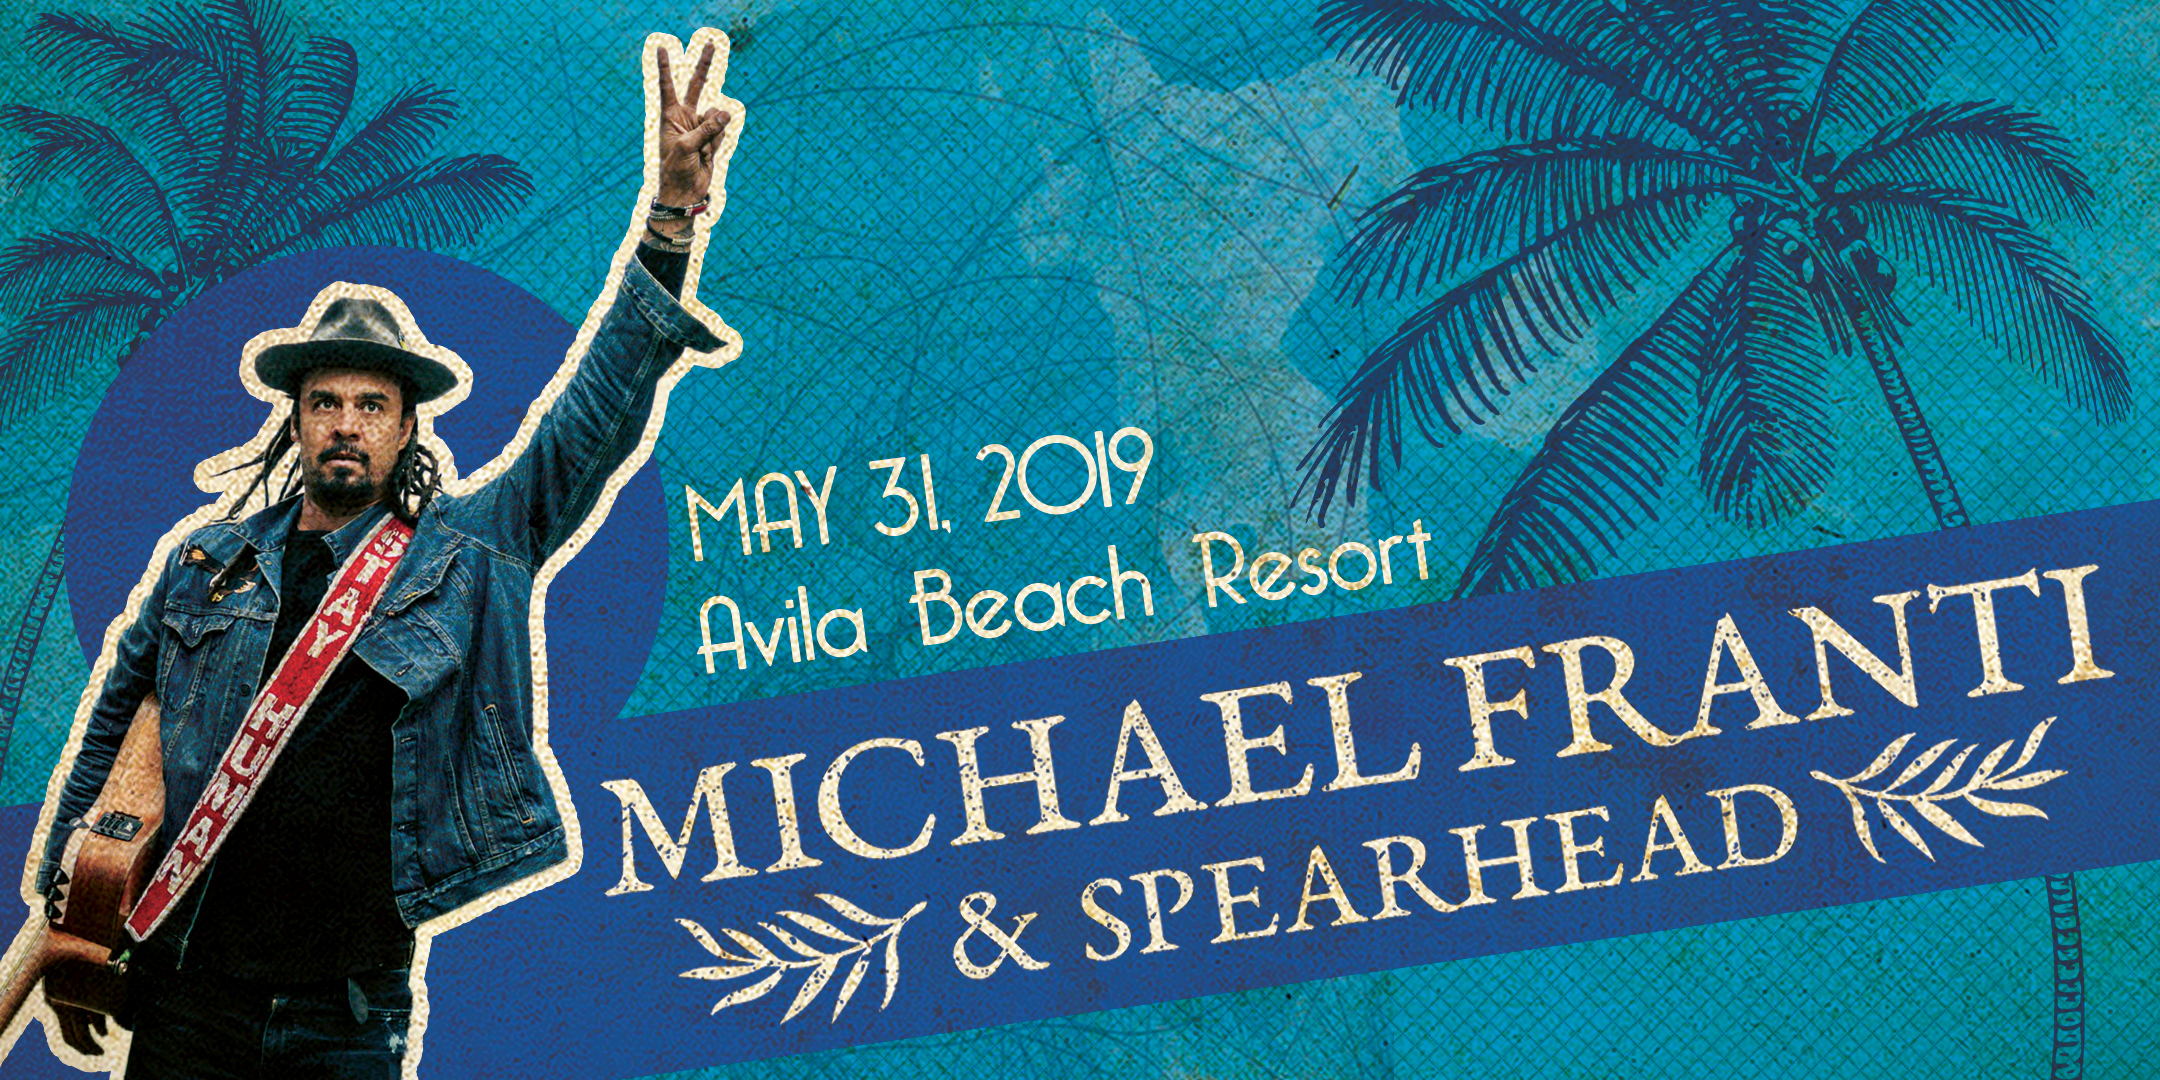 5.31.19 Michael Franti_FB Banner_Approved 2.8.19.jpg